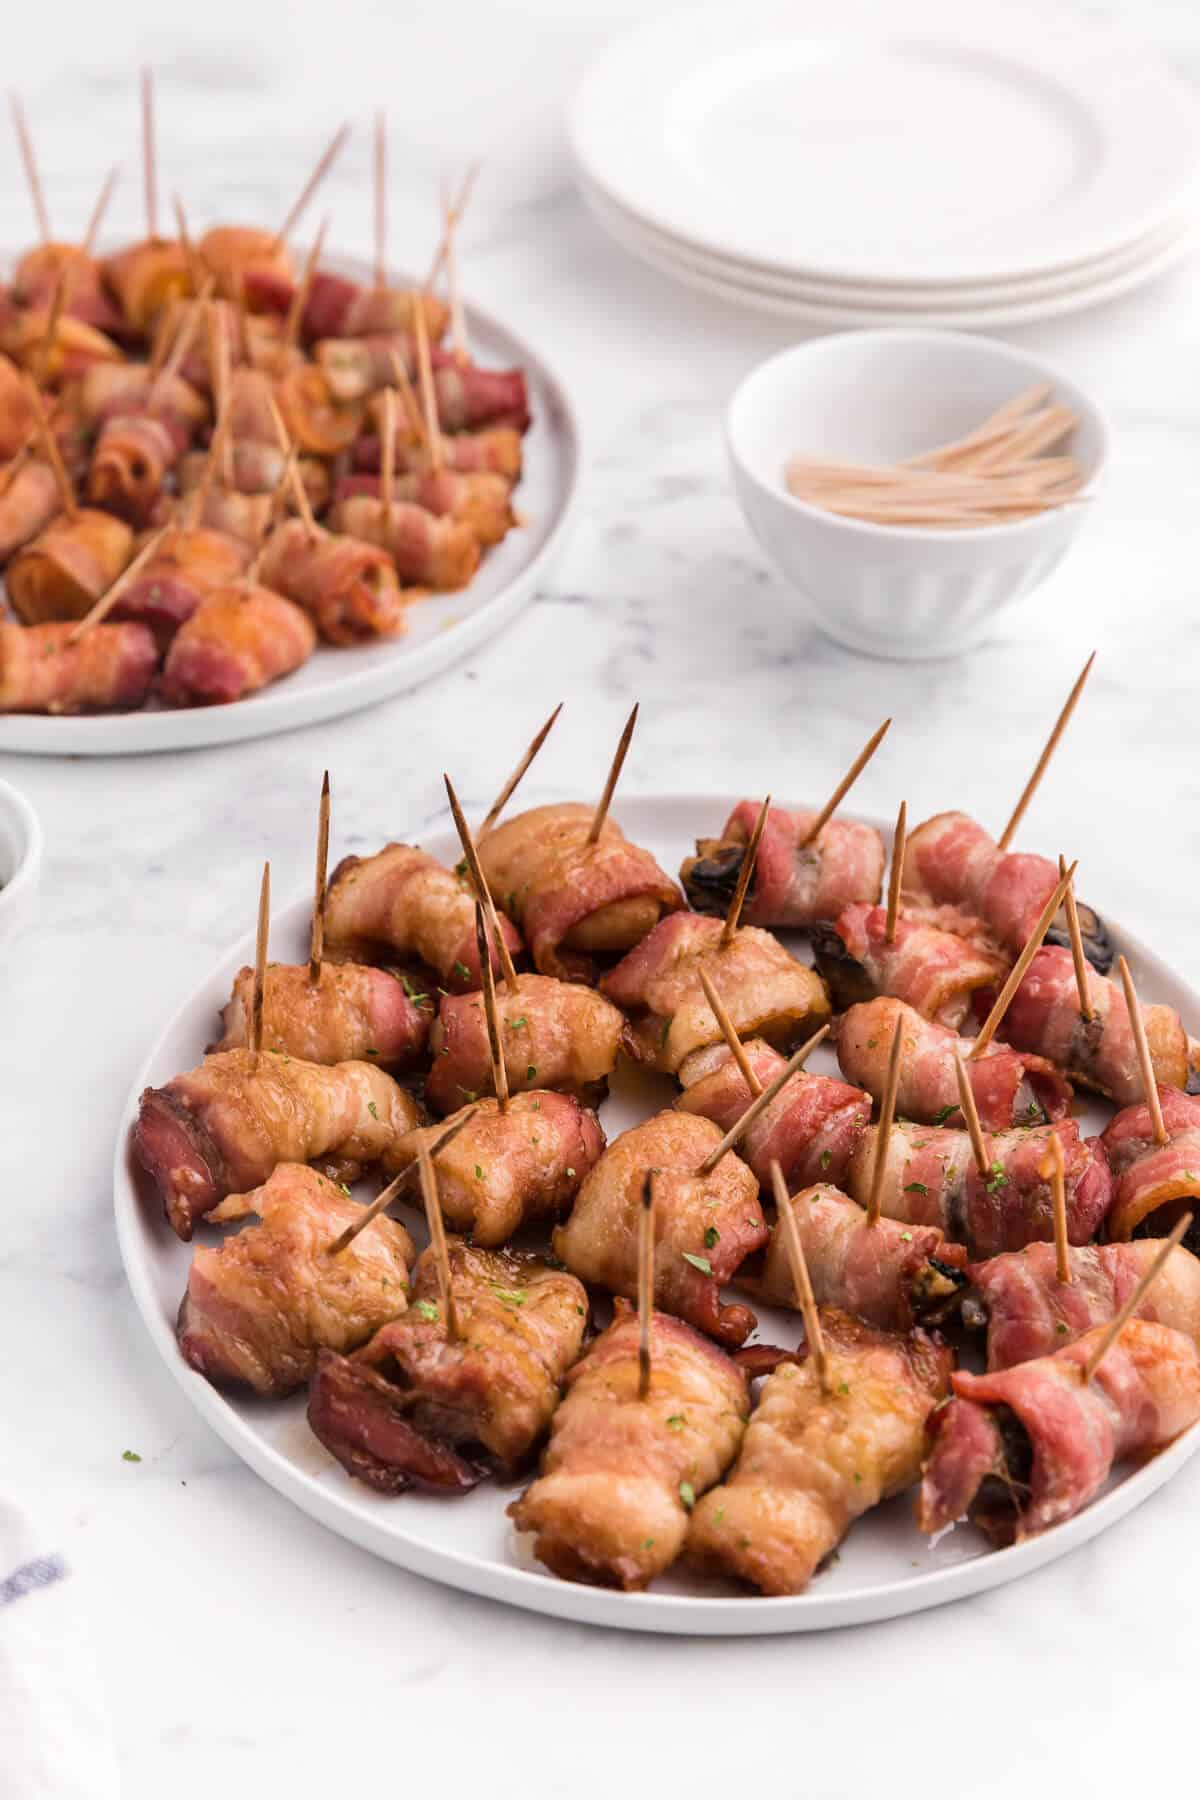 Bacon Wrapped Appetizers - Bite sized and addicting! Try four varieties - bacon wrapped water chestnuts, bacon wrapped smoked oysters, bacon wrapped pineapple and bacon wrapped olives.